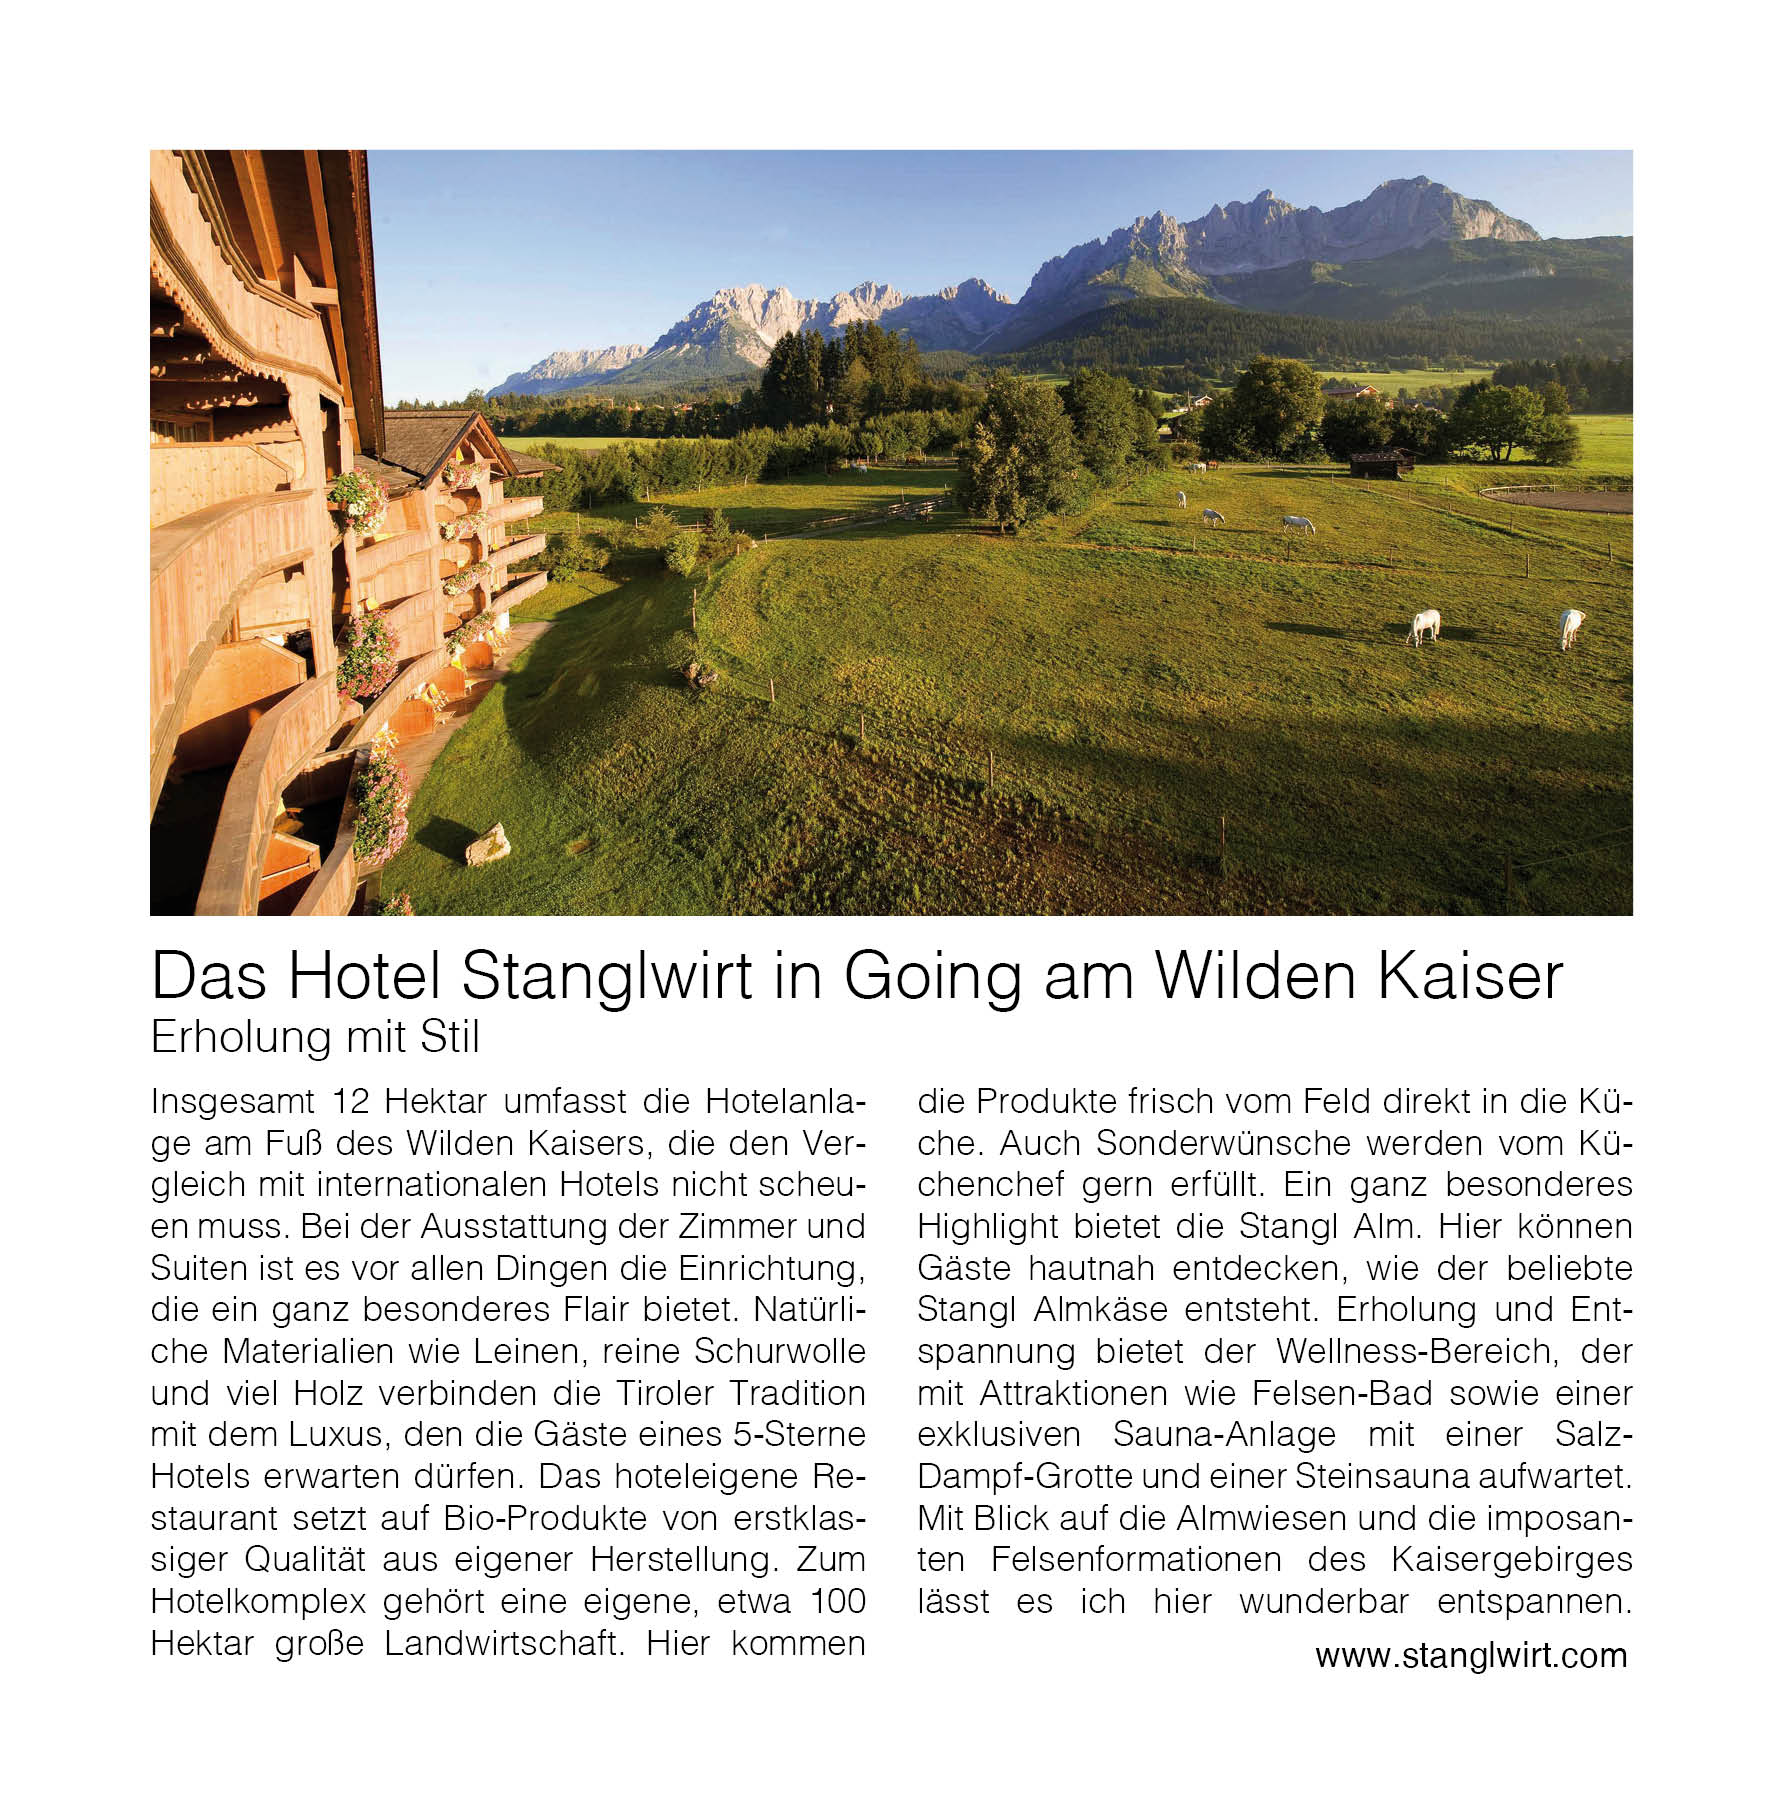 http://www.berge-exclusiv.de/wp-content/uploads/Pocket-Guide-18041622.jpg